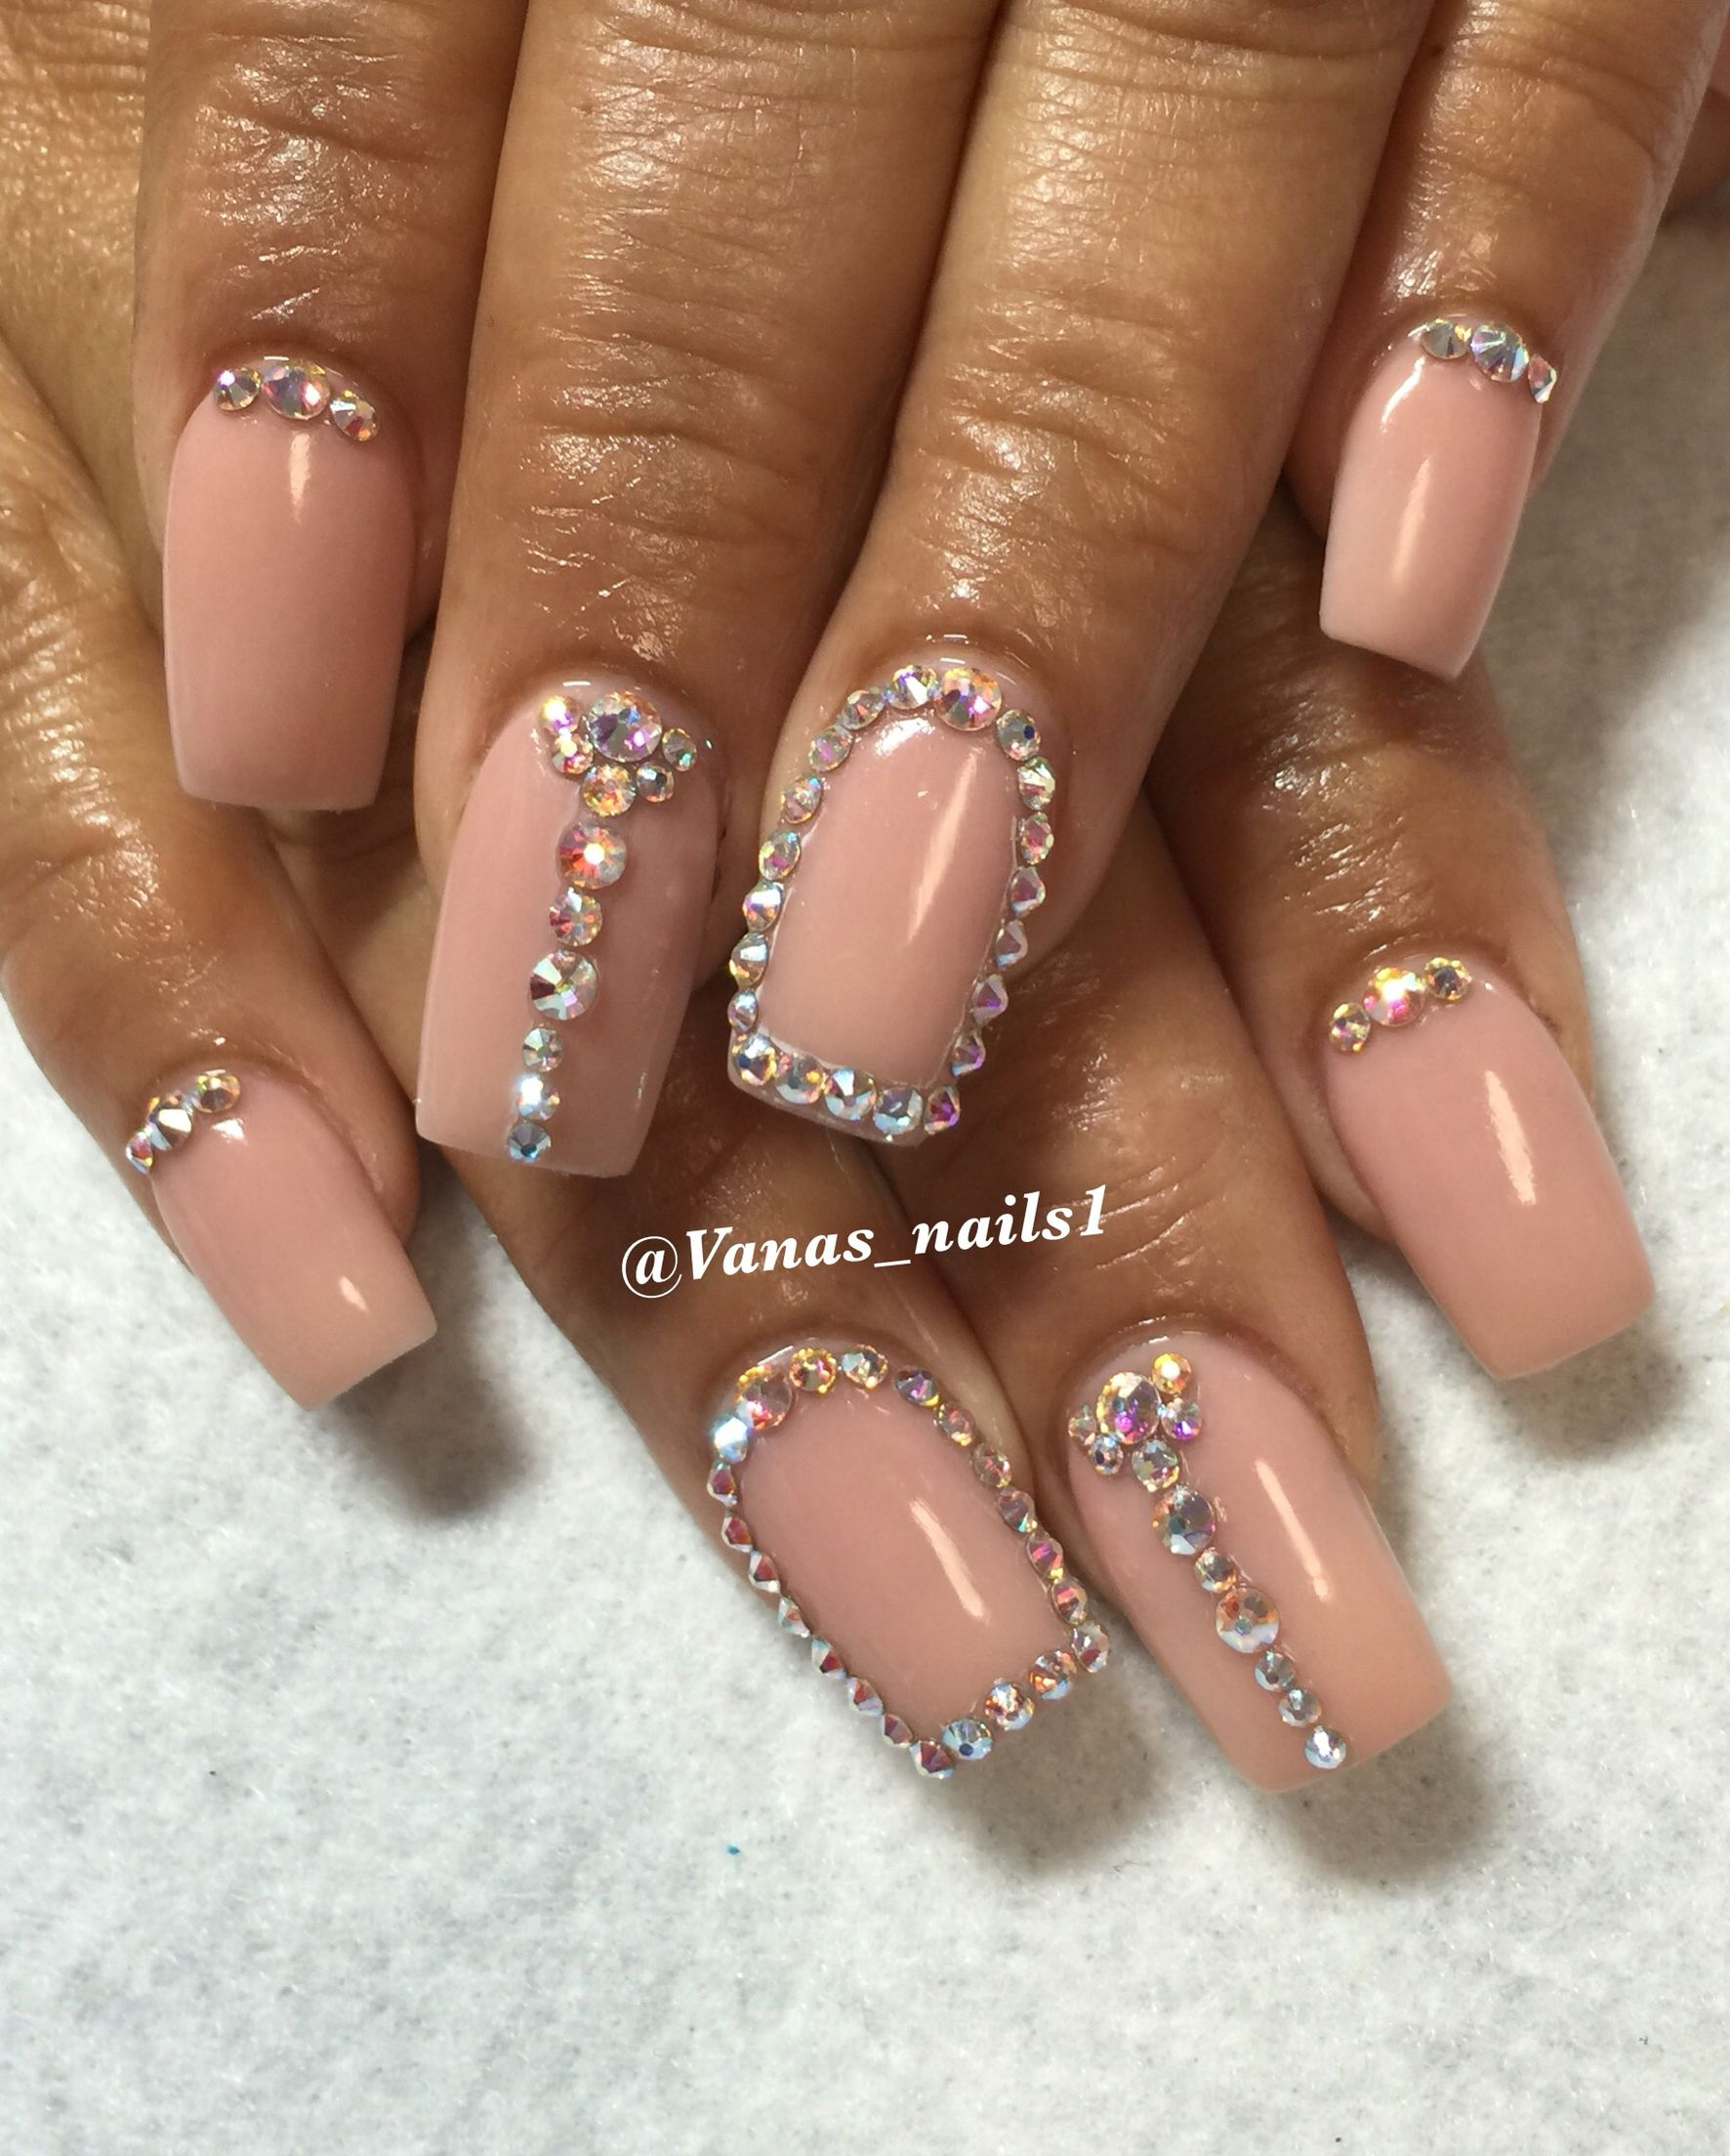 Nude & swarovski nail design Bling nails | Vana\'s nails | Pinterest